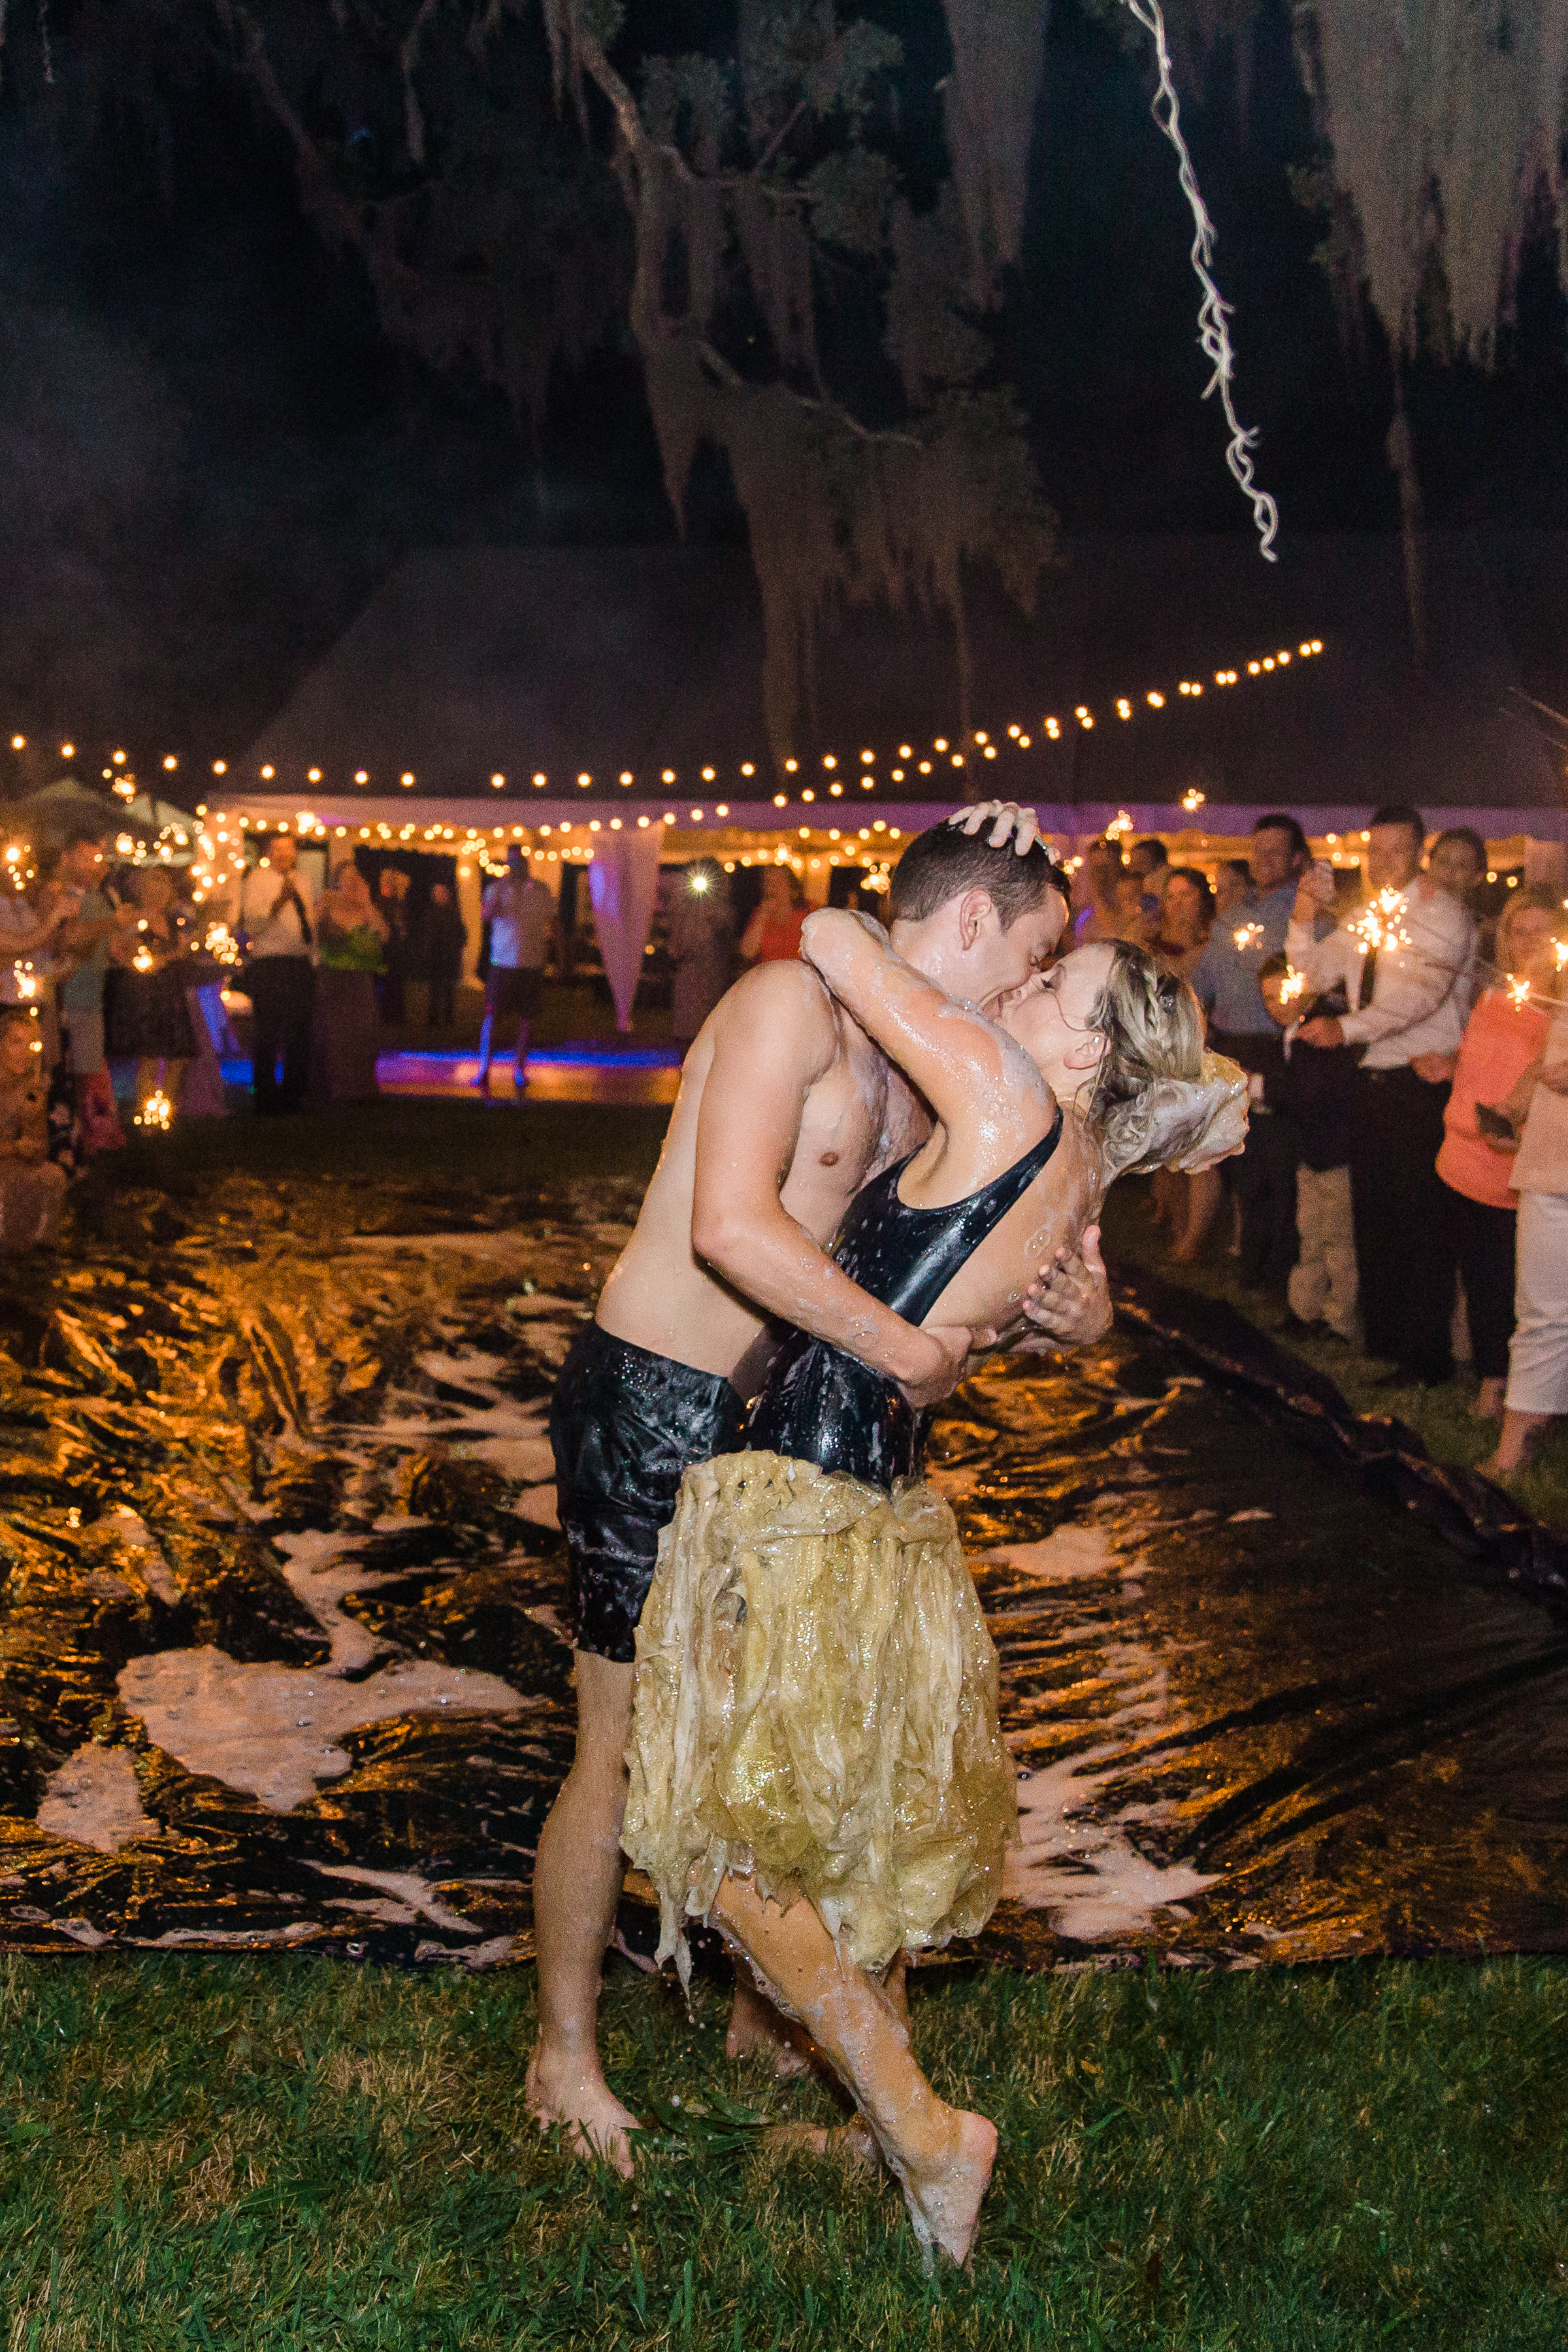 And to make this day even better? They ended their reception with a slip-and-slide!! How freaking cool is that?!